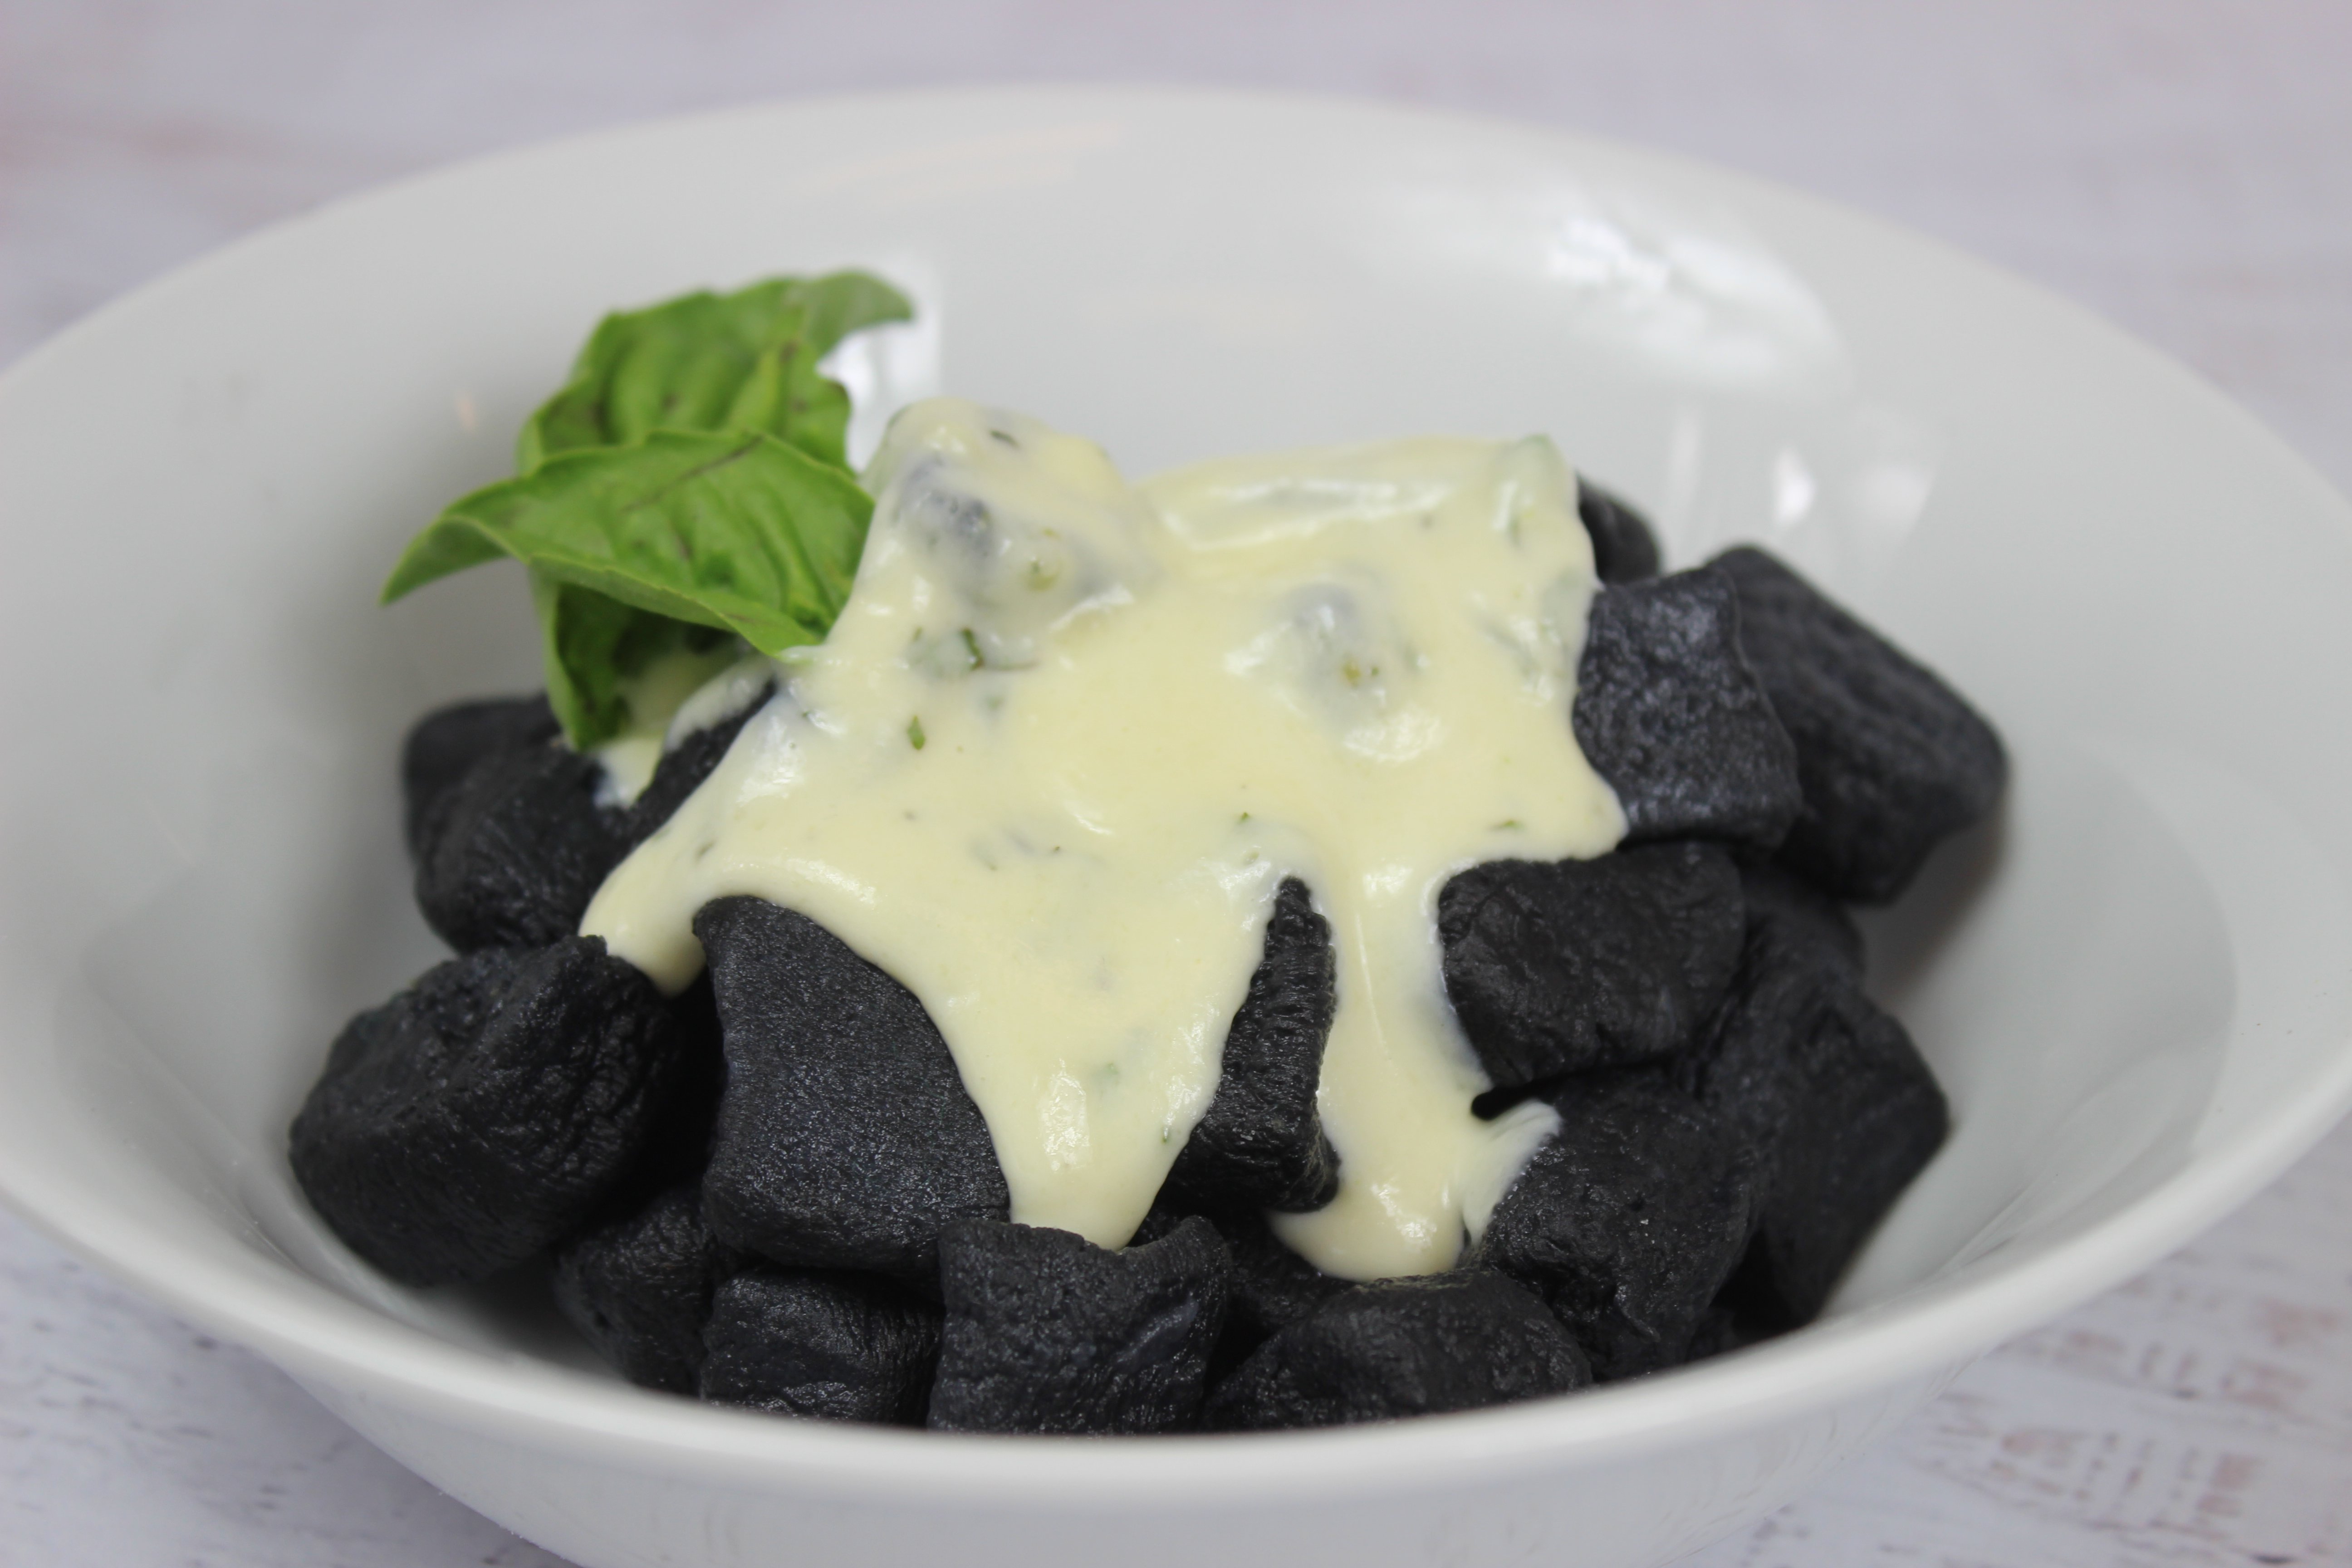 Charcoal Gnocchi in a Parmesan Cream Sauce